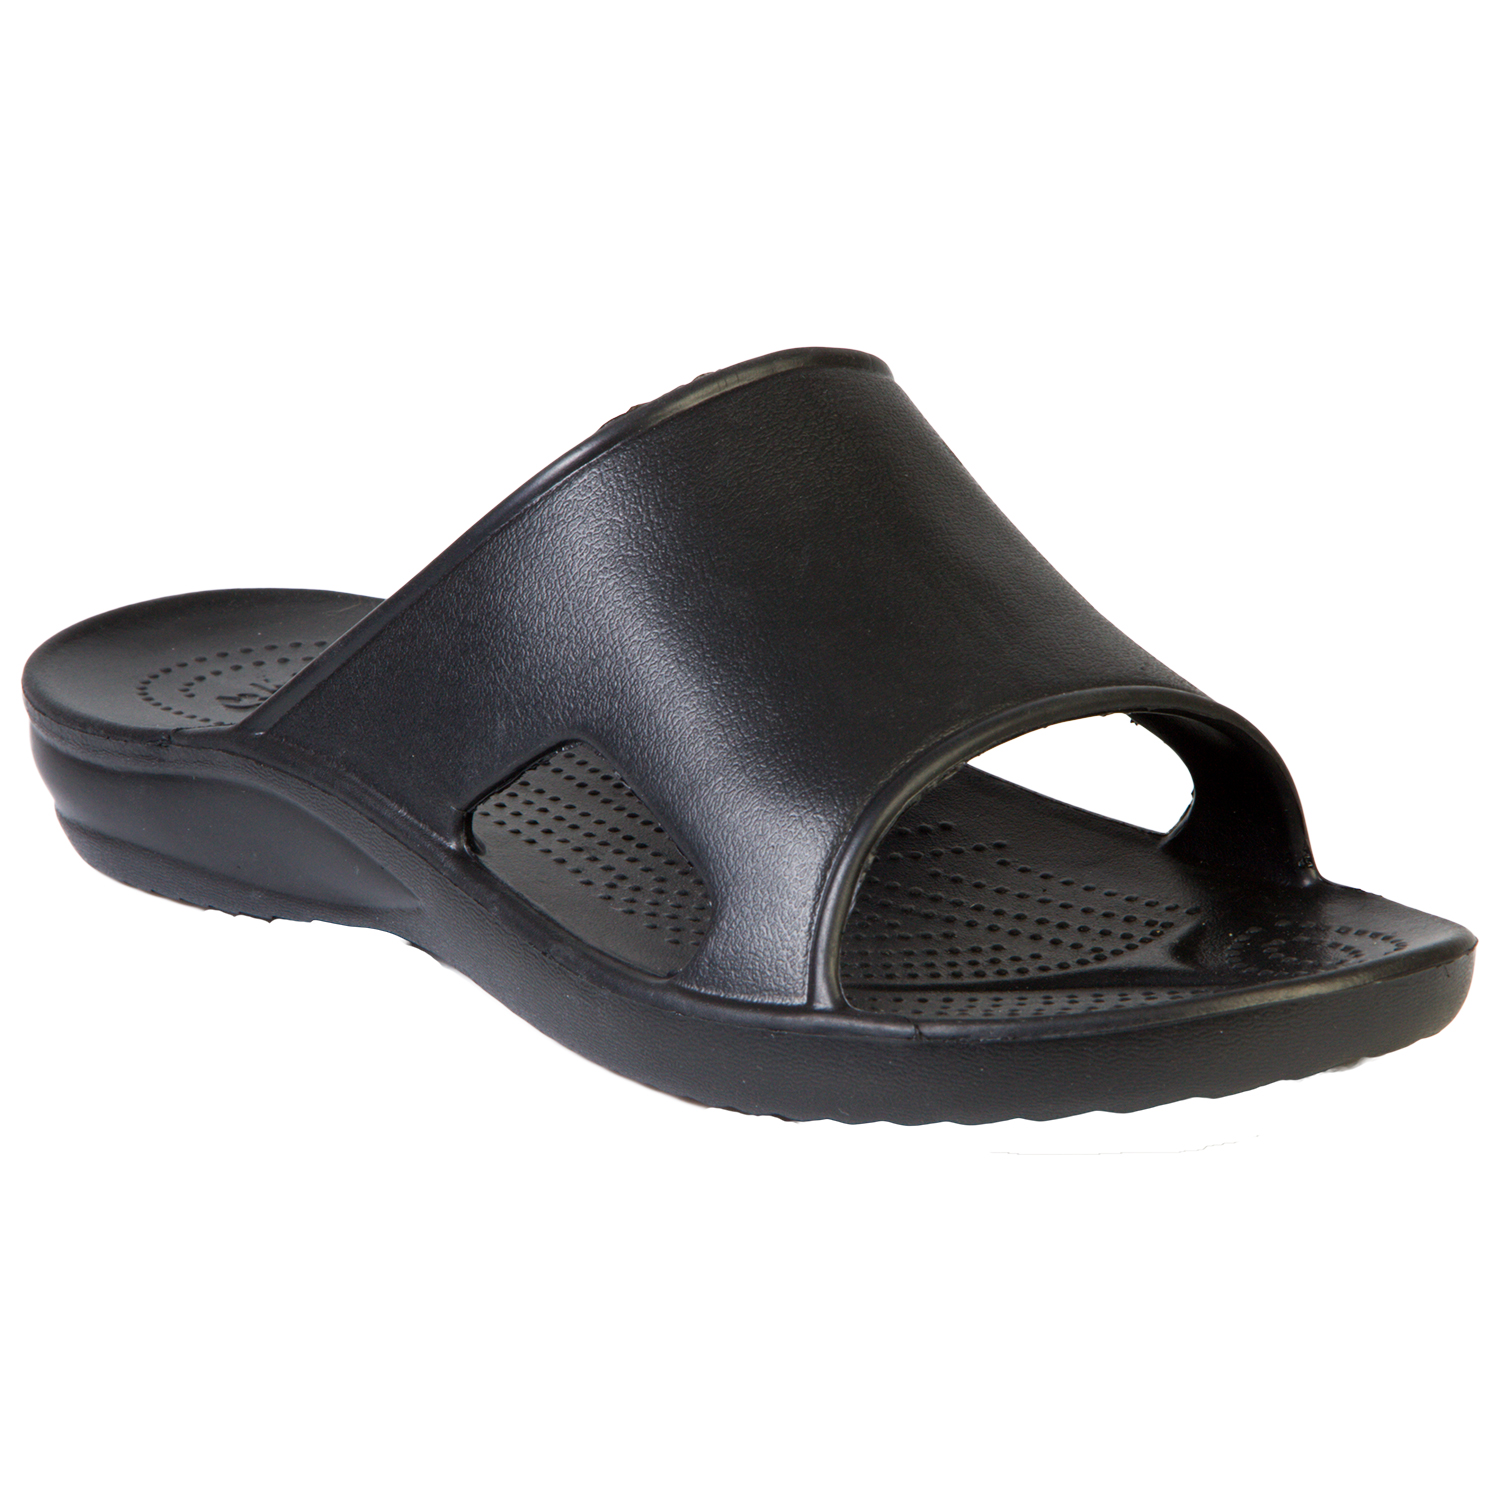 Men's Dawgs Slides Black Size 8